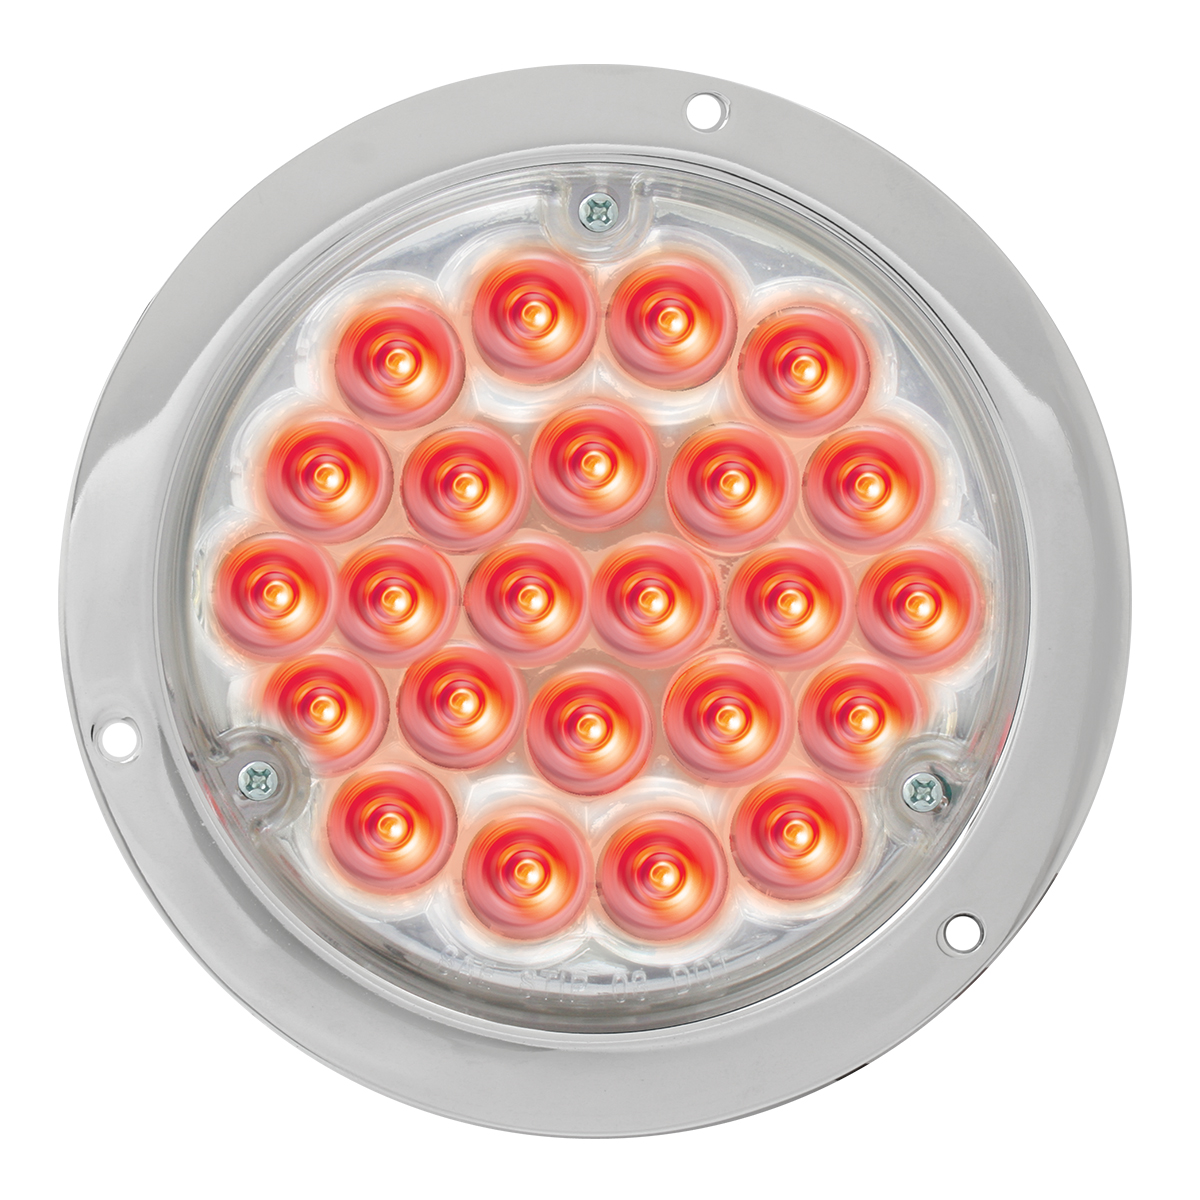 "87583 4"" Pearl LED Light in Red/Clear w/ Chrome Housing"